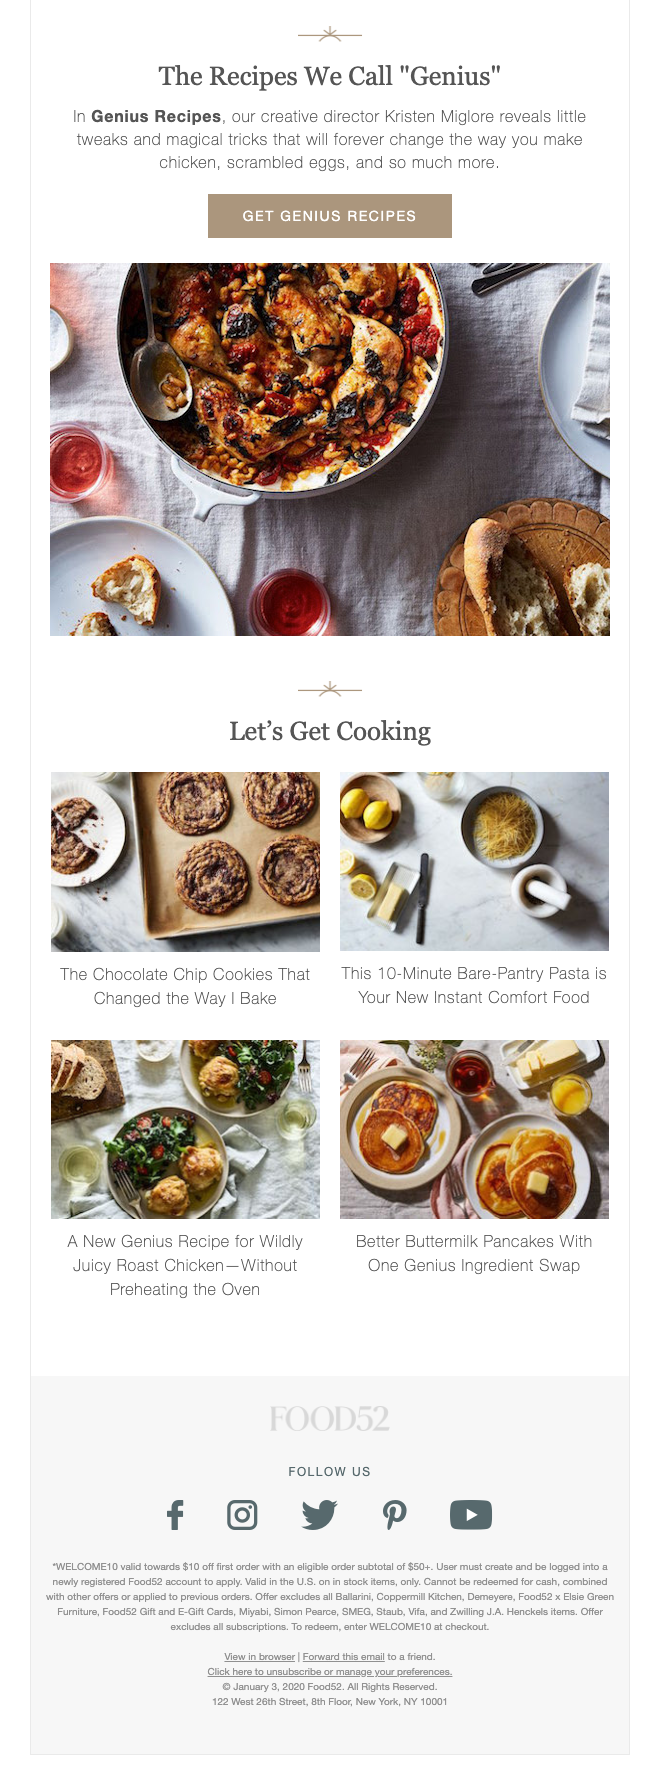 Second half of welcome email from food blog and ecommerce website Food52